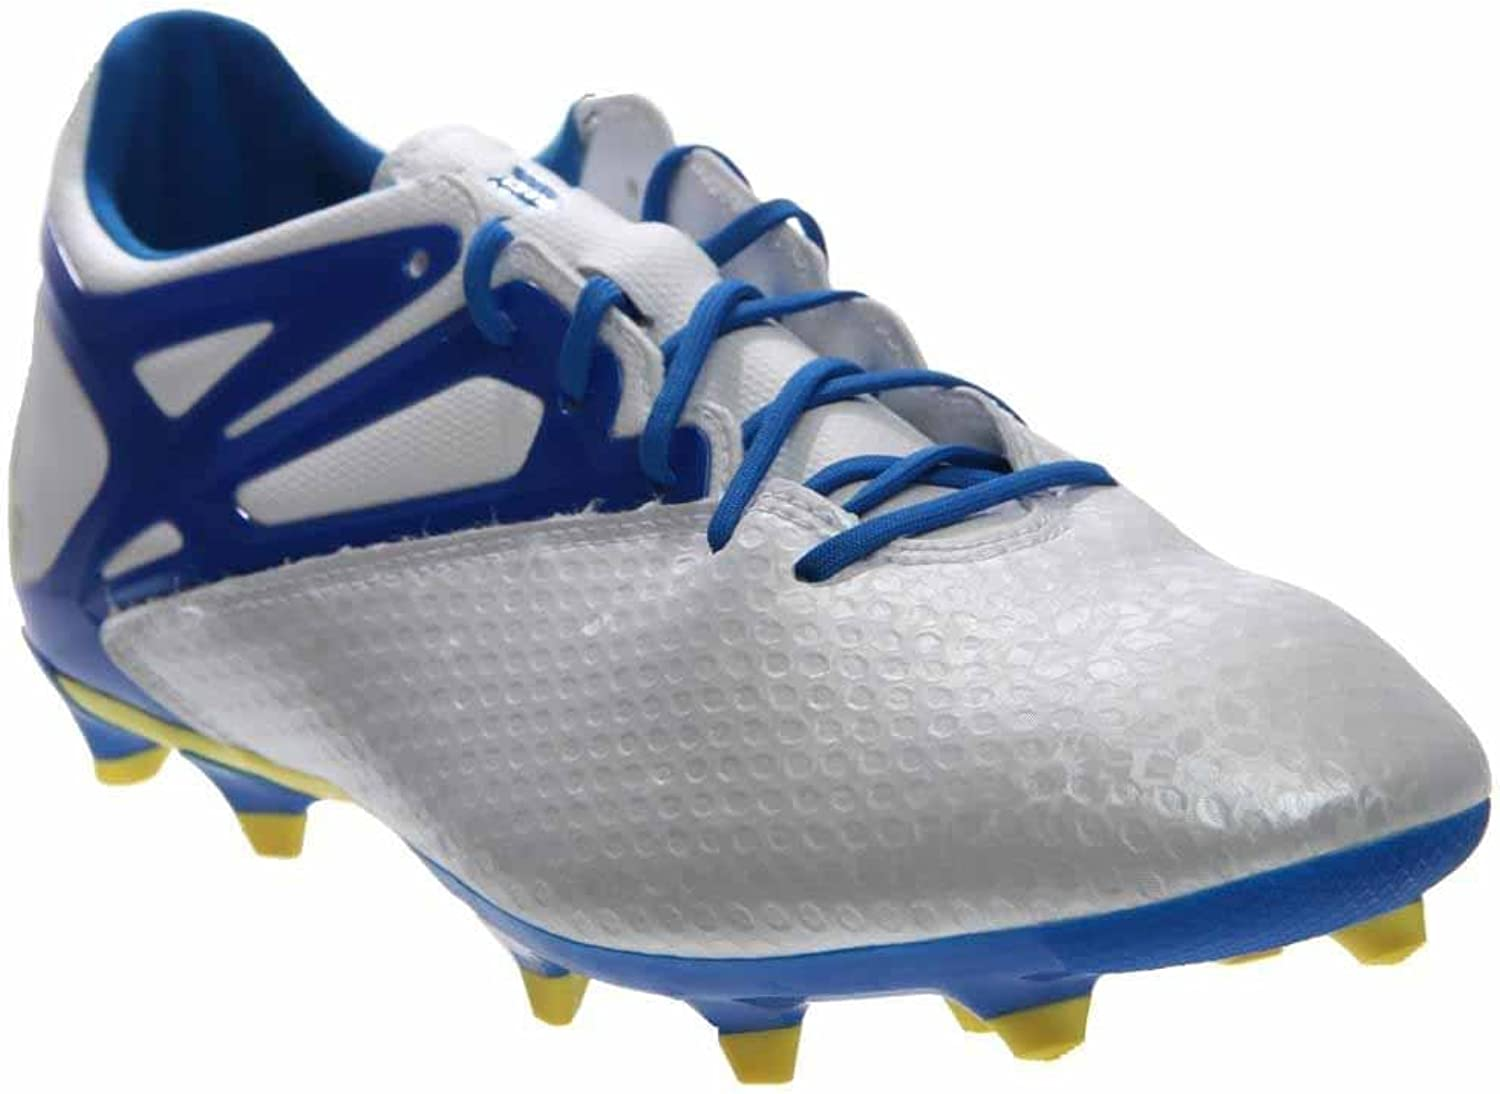 Adidas Mens Messi 15.2 FG AG Firm Ground Artificial Grass Soccer Cleats